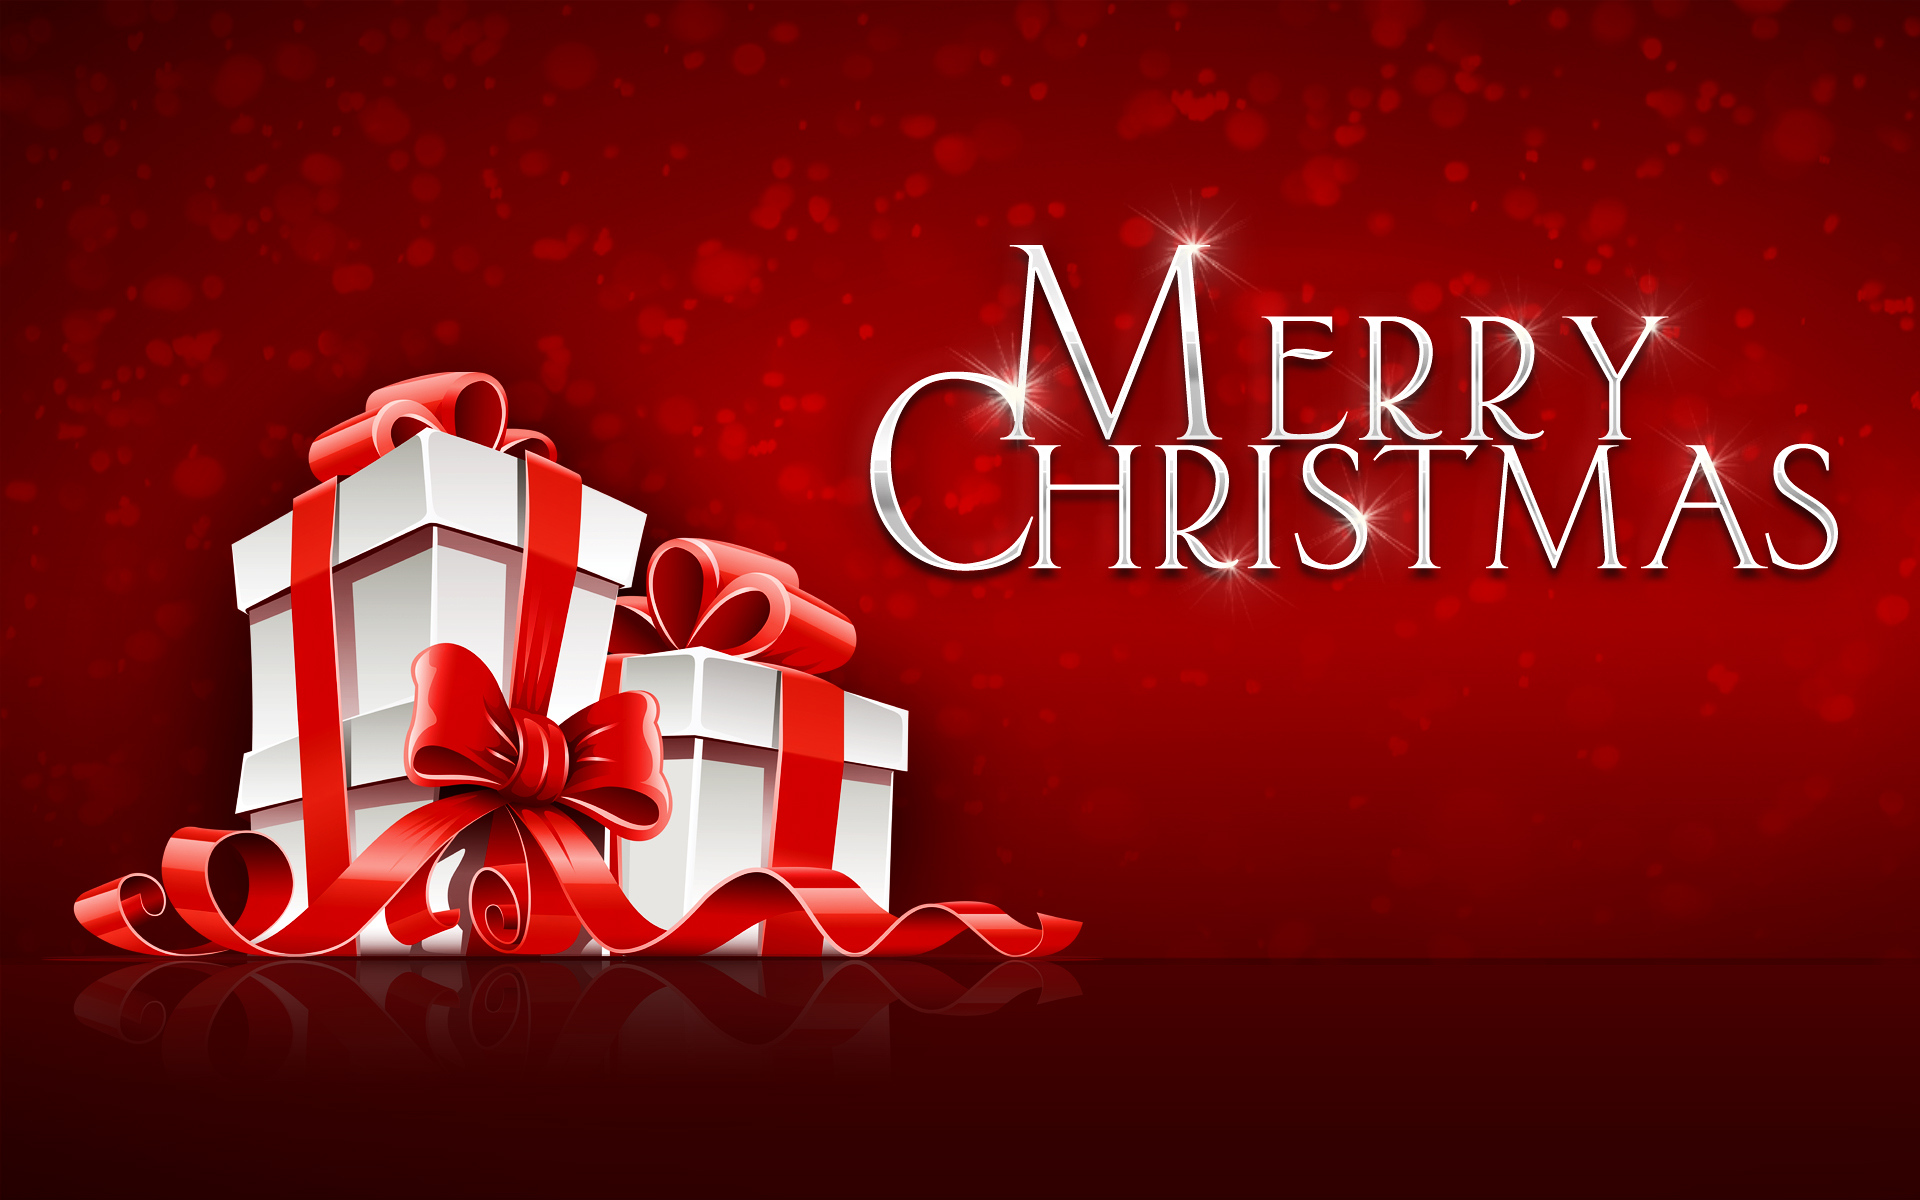 Merry Christmas Wishes Texts On Wood Latest Hd Wallpaper